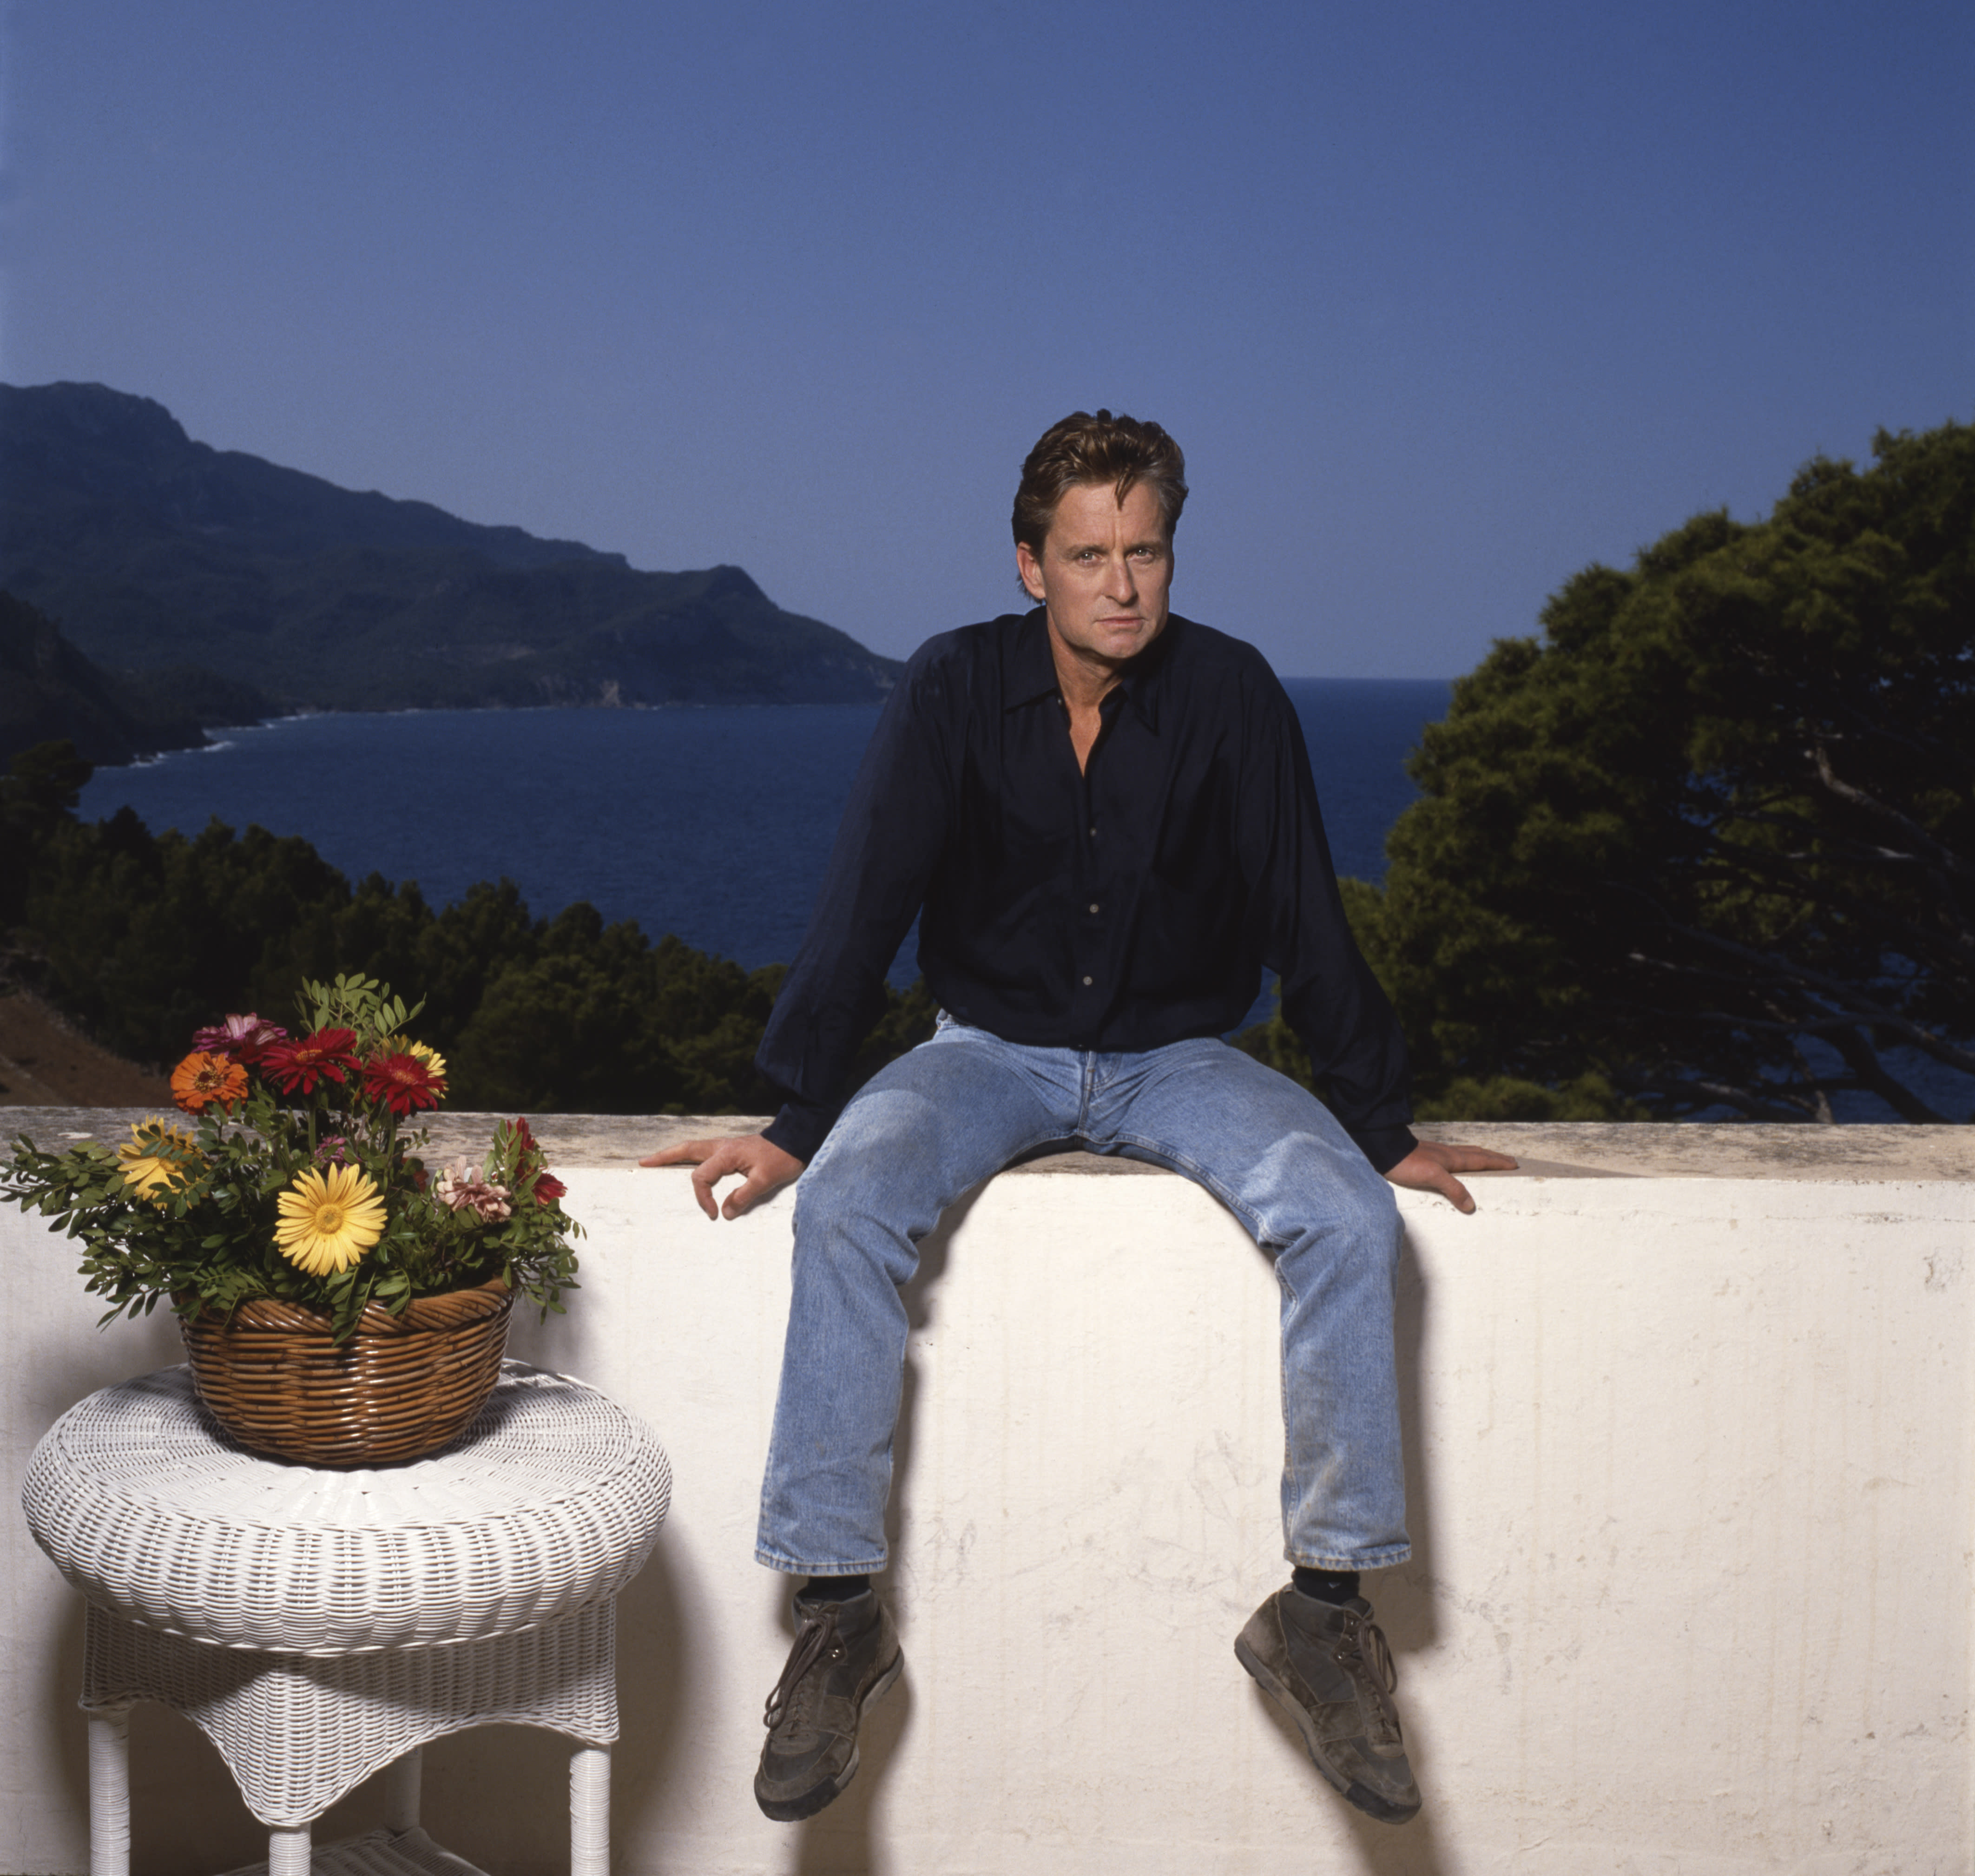 American actor Michael Douglas at his home in Majorca. (Photo by Terry O'Neill/Iconic Images/Getty Images)